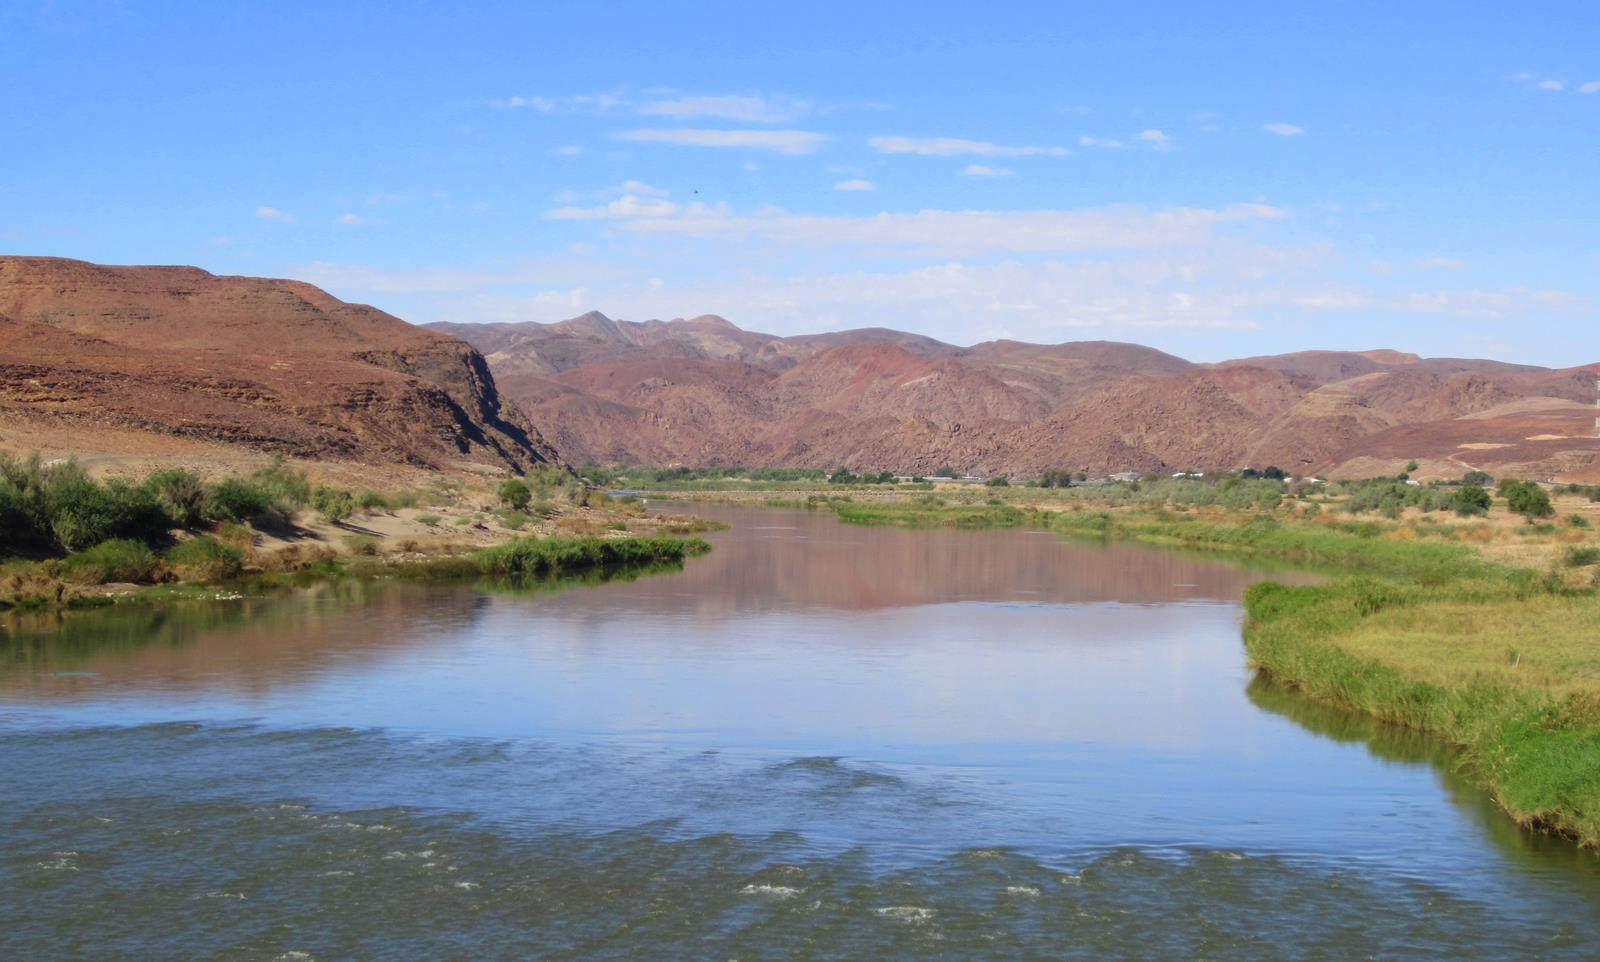 The Gariep River forms the border between South Africa and Namibia.